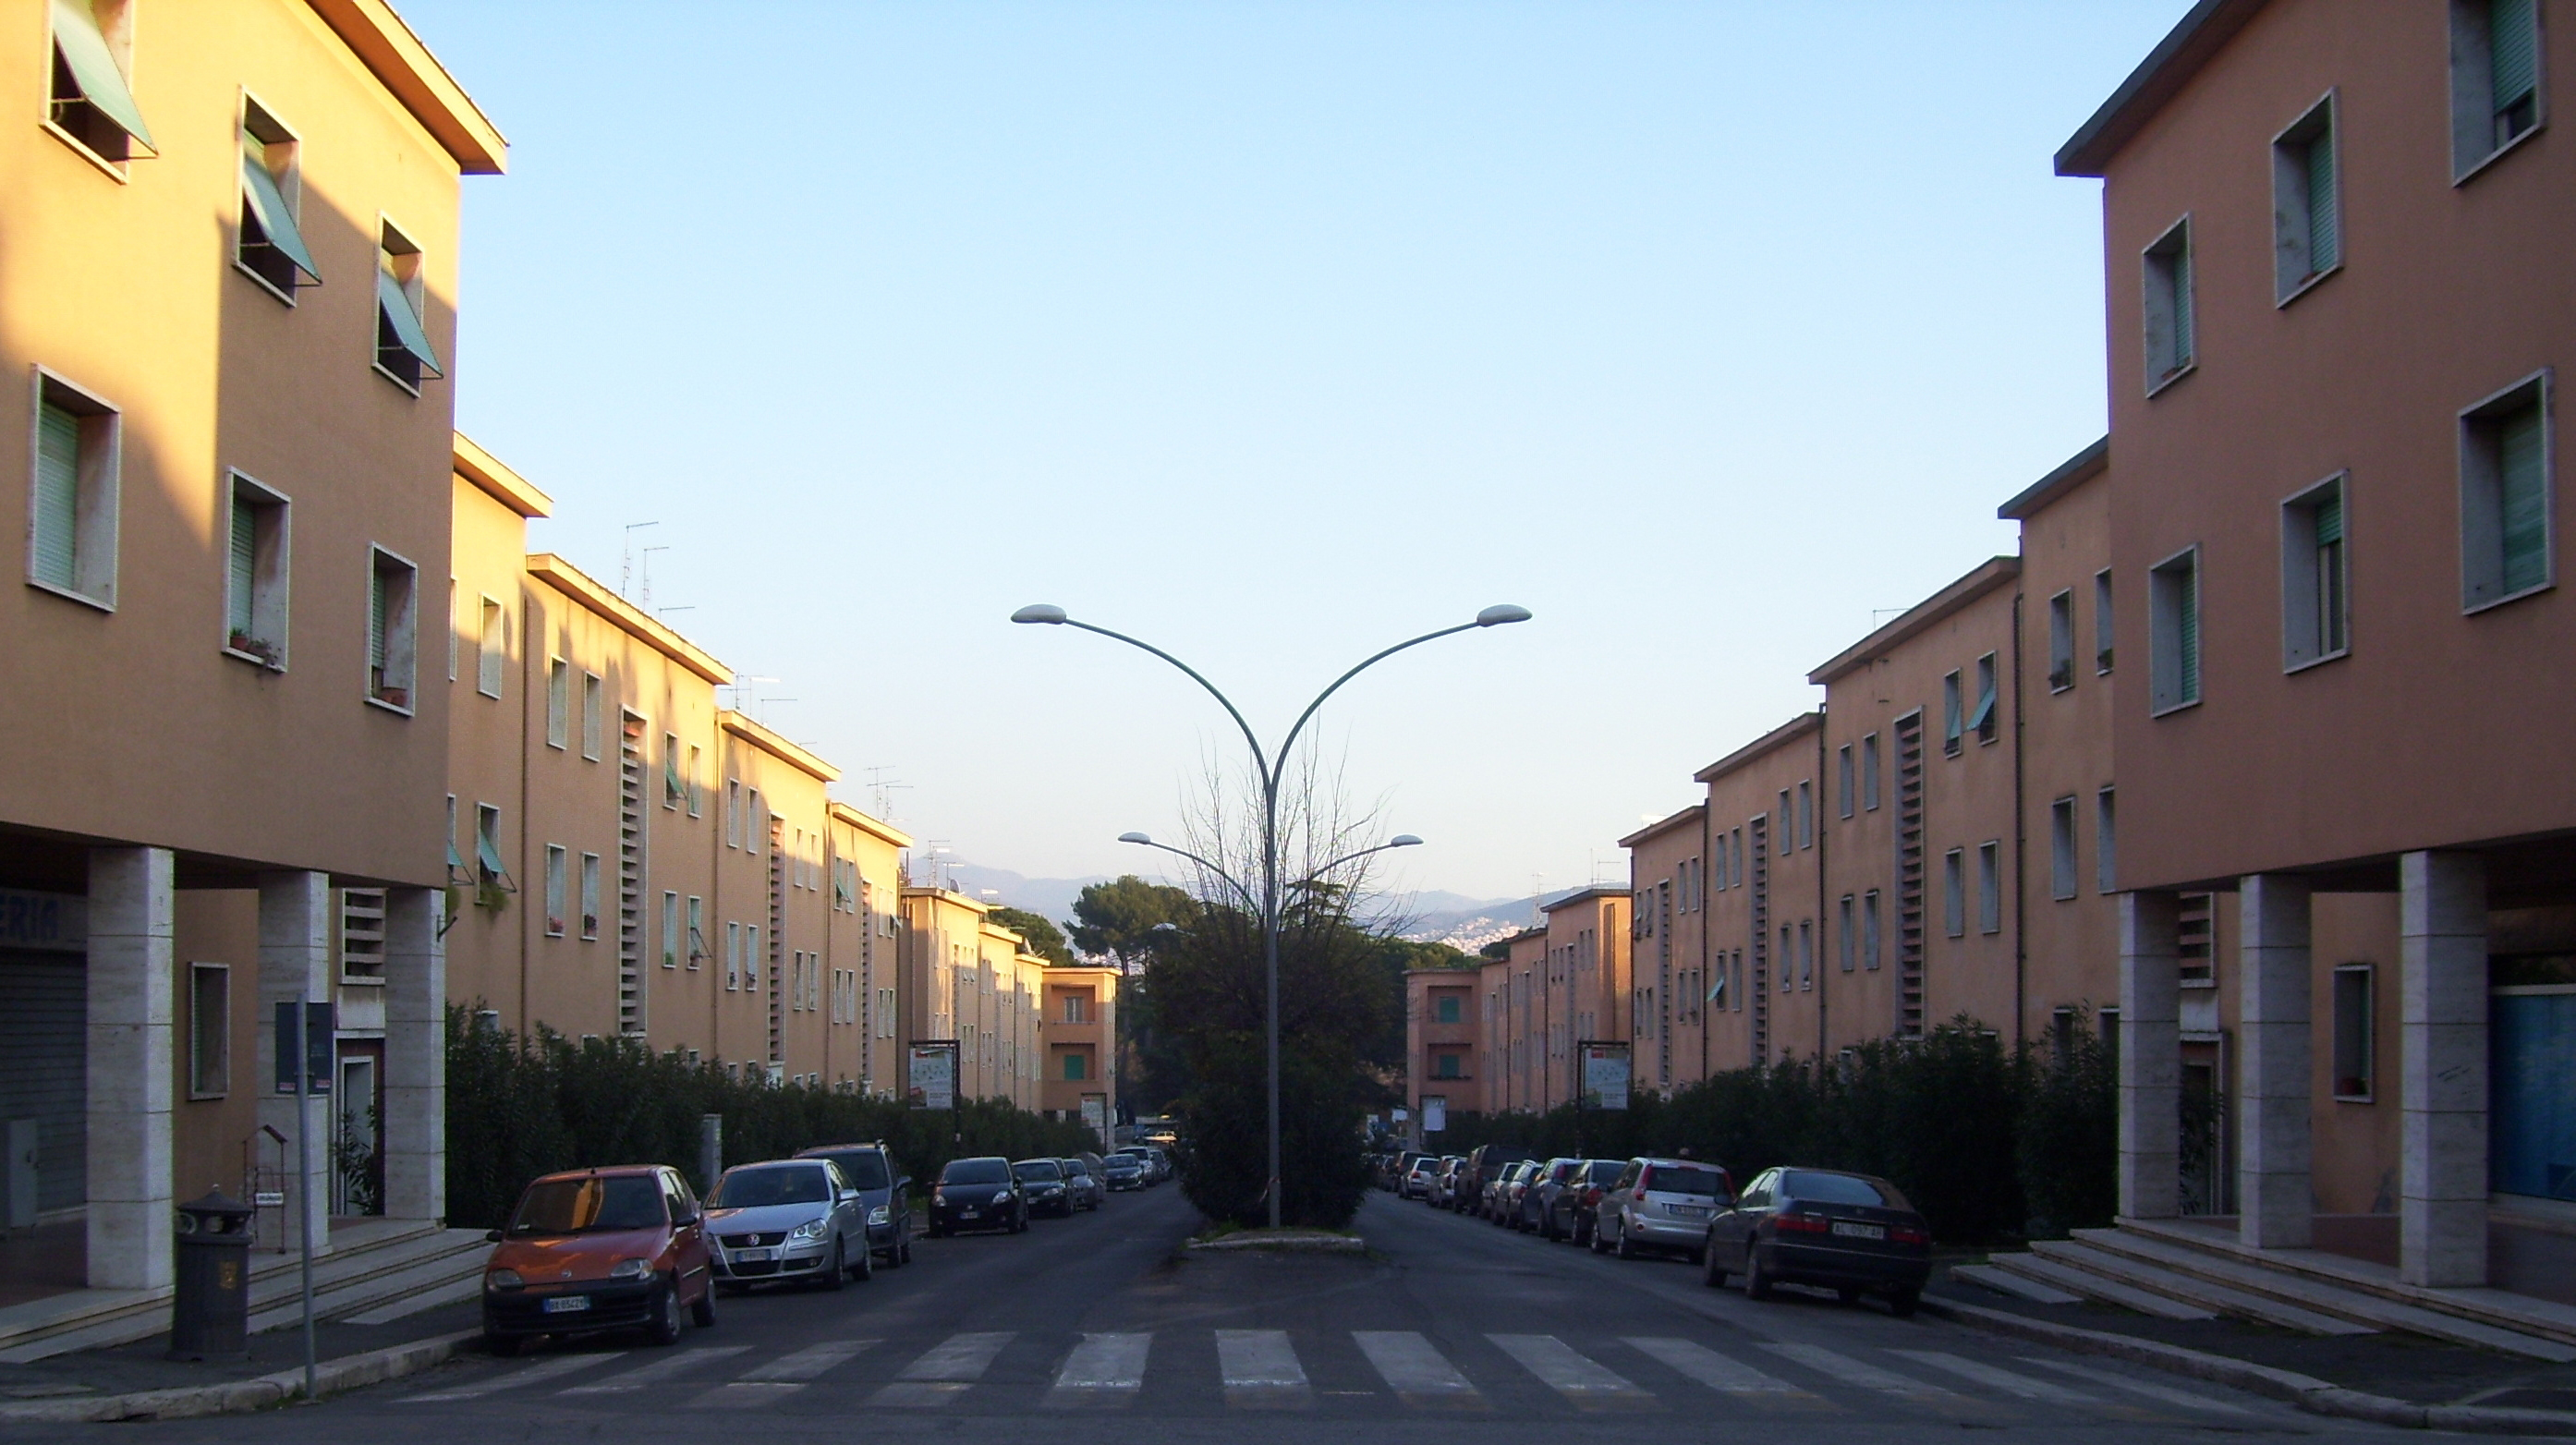 Guidonia Italy  city pictures gallery : malagrotta, Lazio, Italy What happens in malagrotta right now!